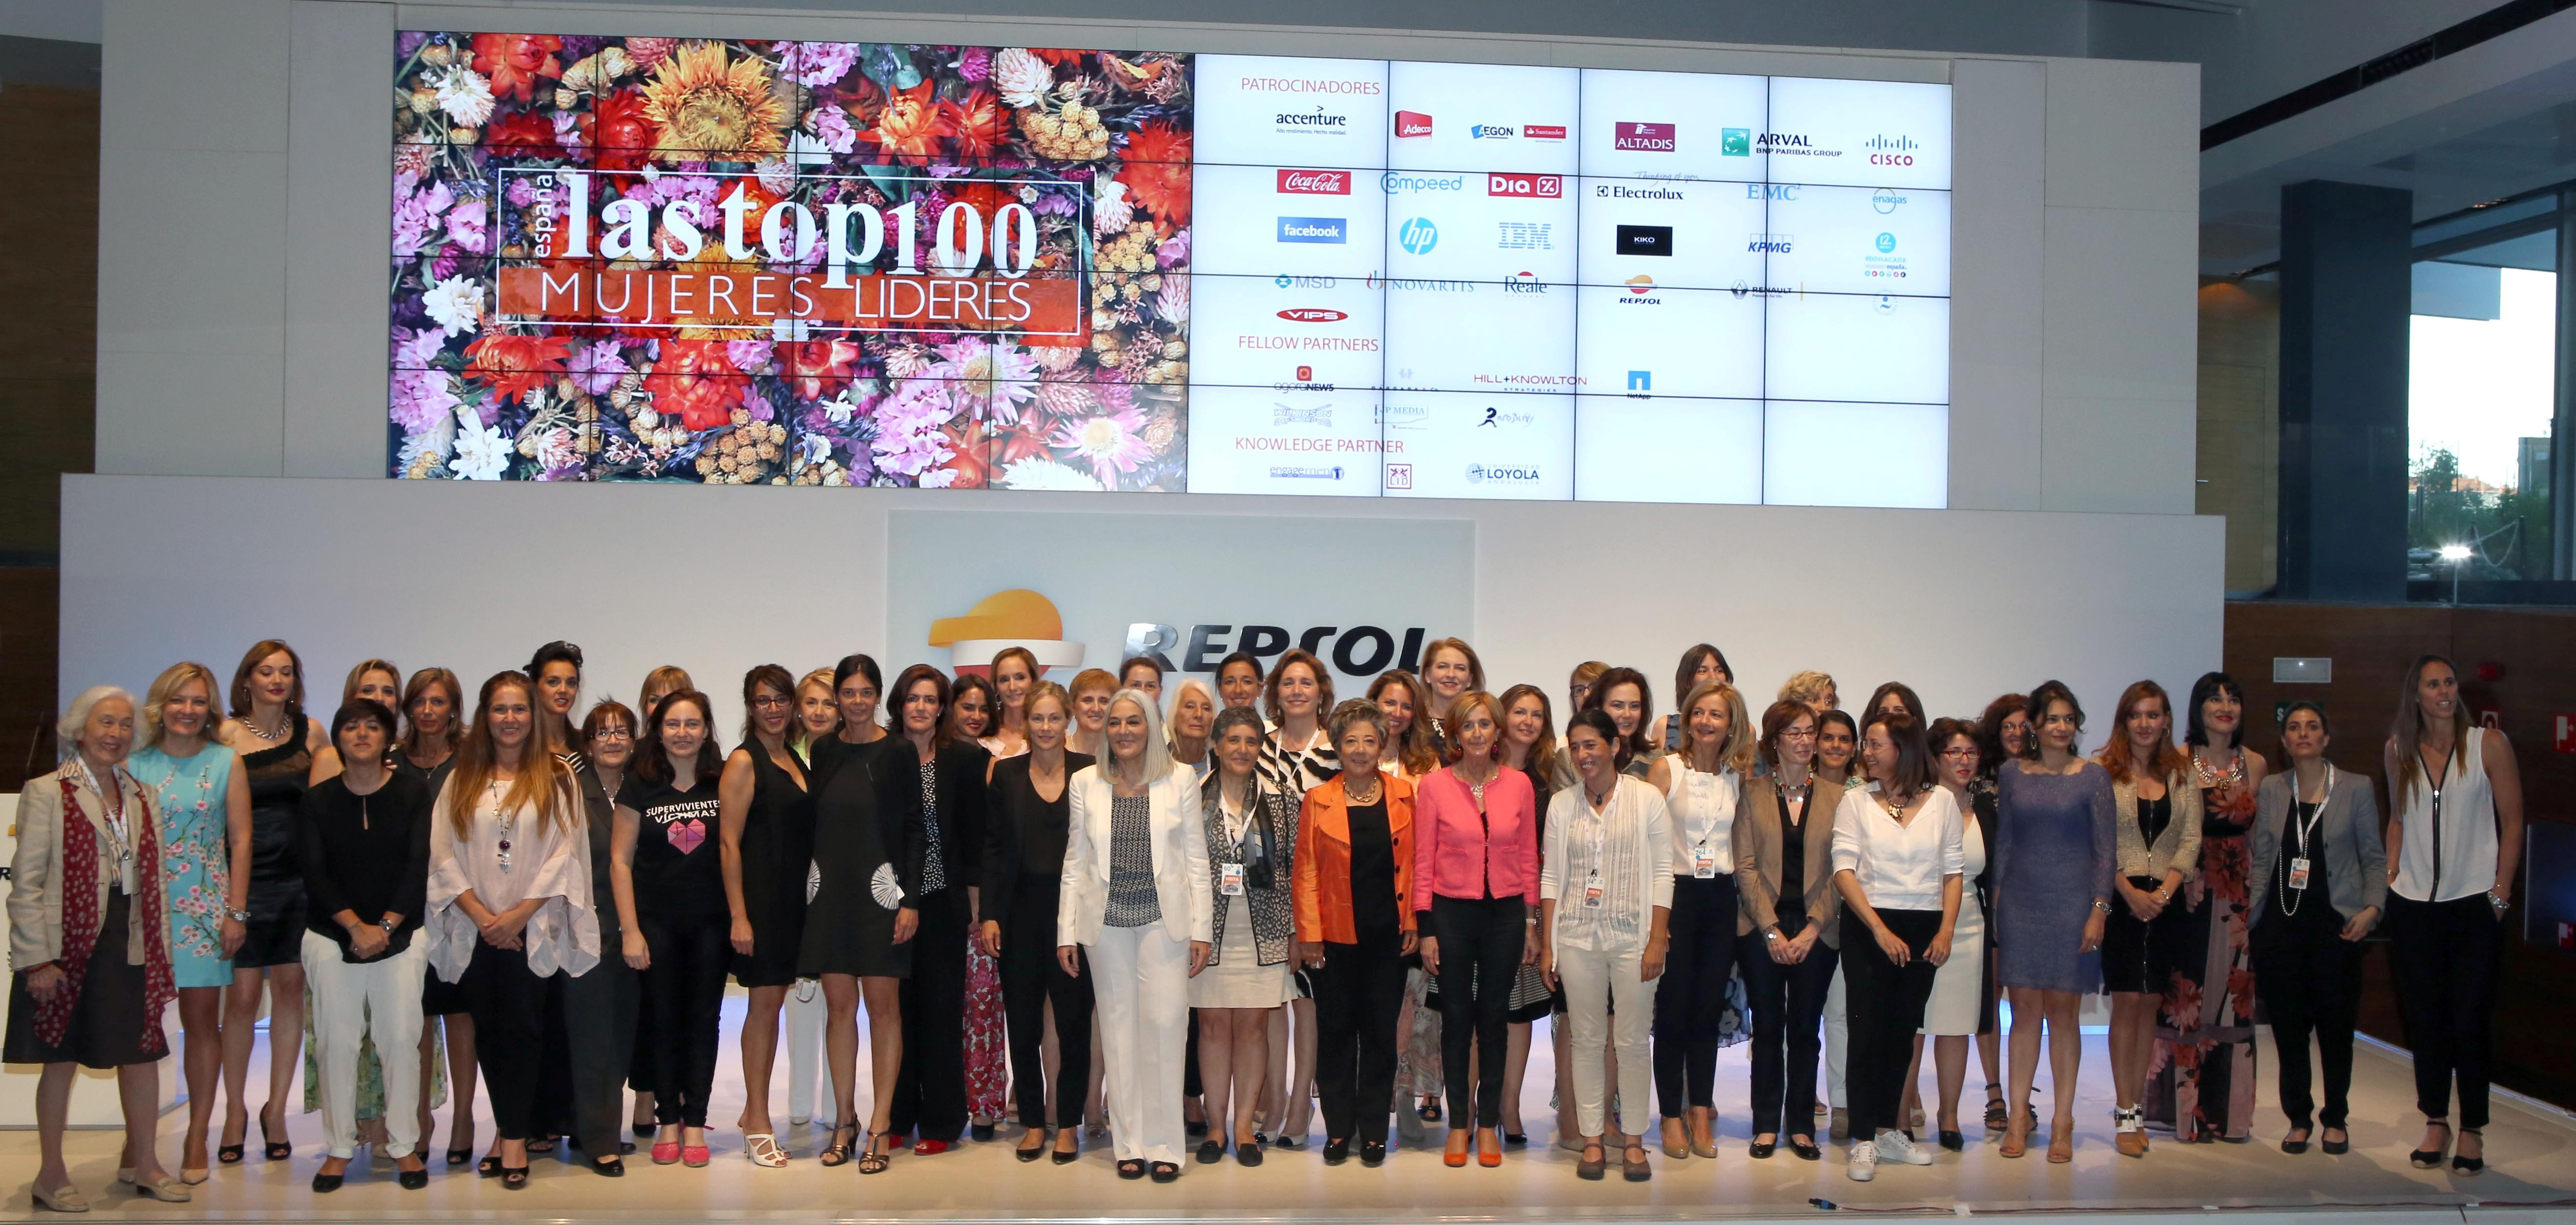 New call for the top 100 women leaders in Spain.